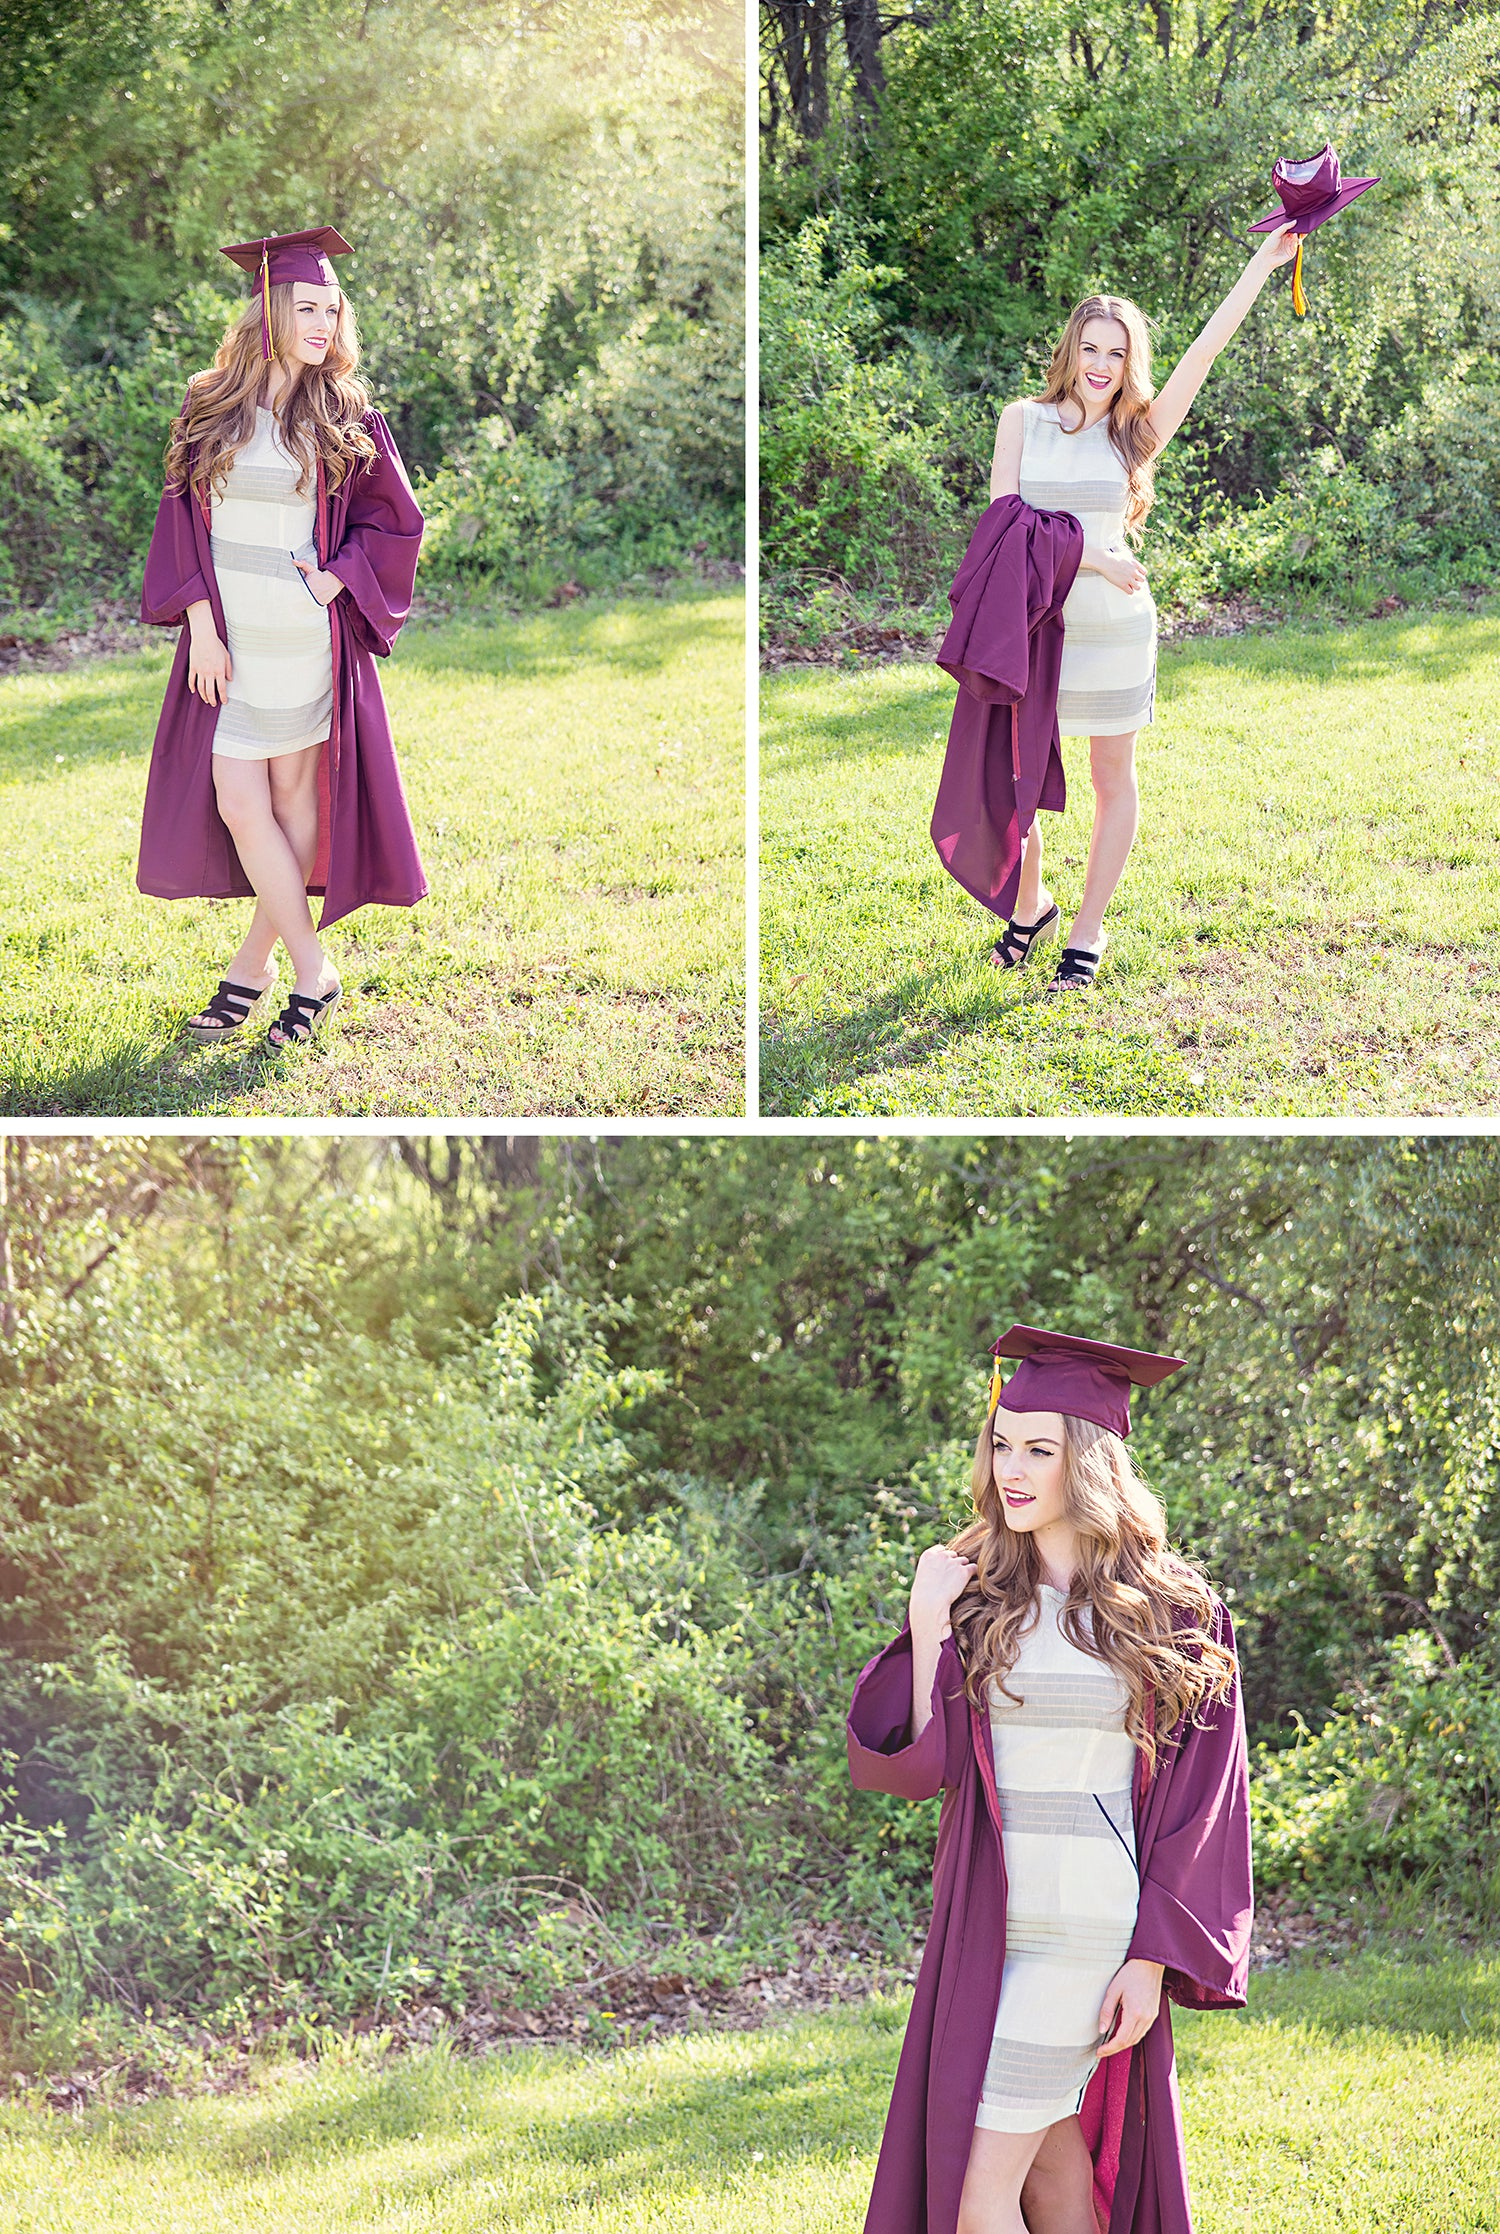 Shop women's trendy and stylish graduation dresses at Eccentrics Boutique